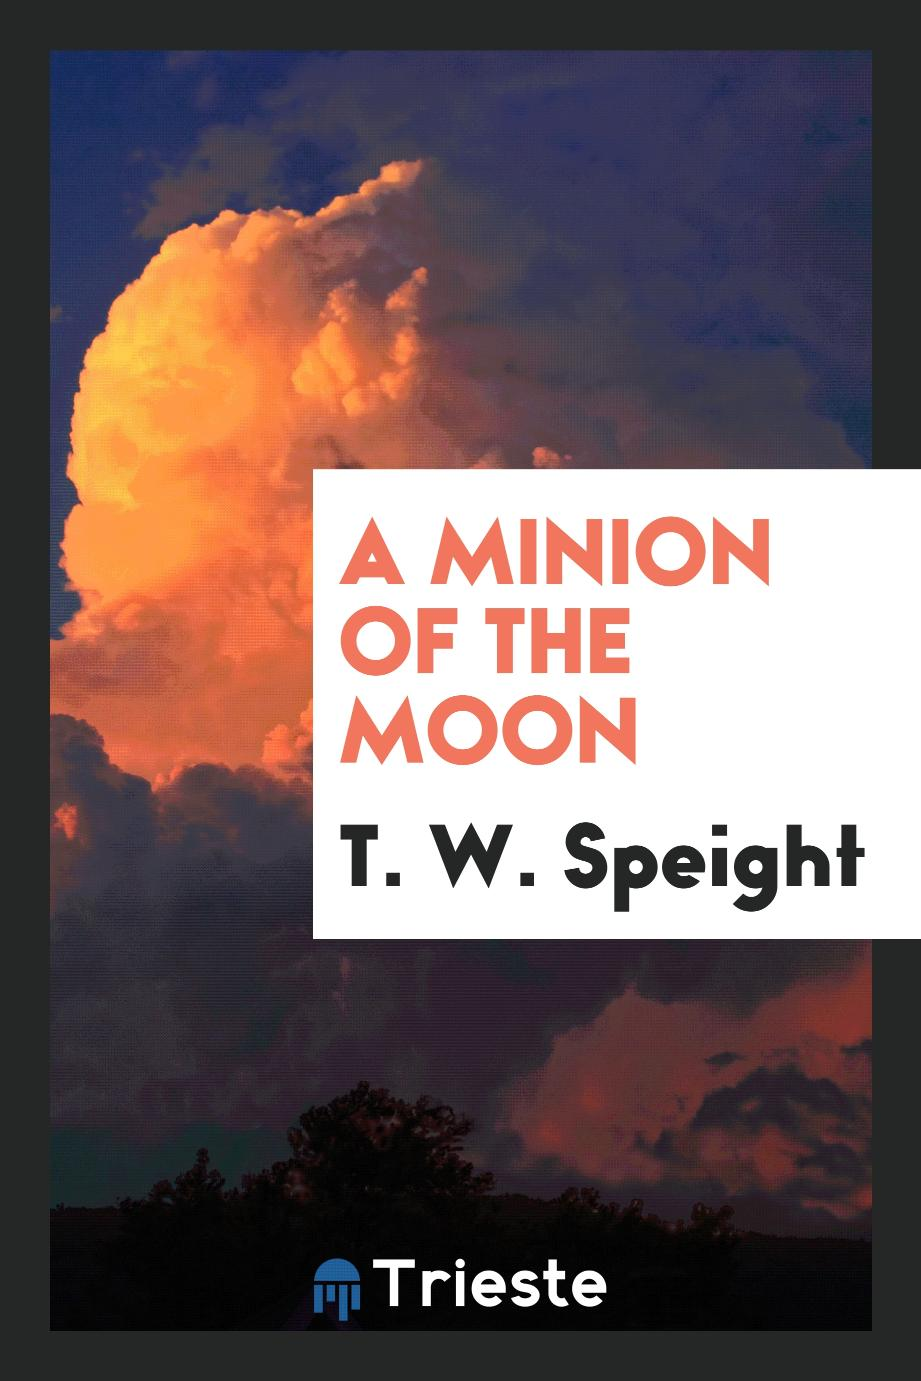 A Minion of the Moon